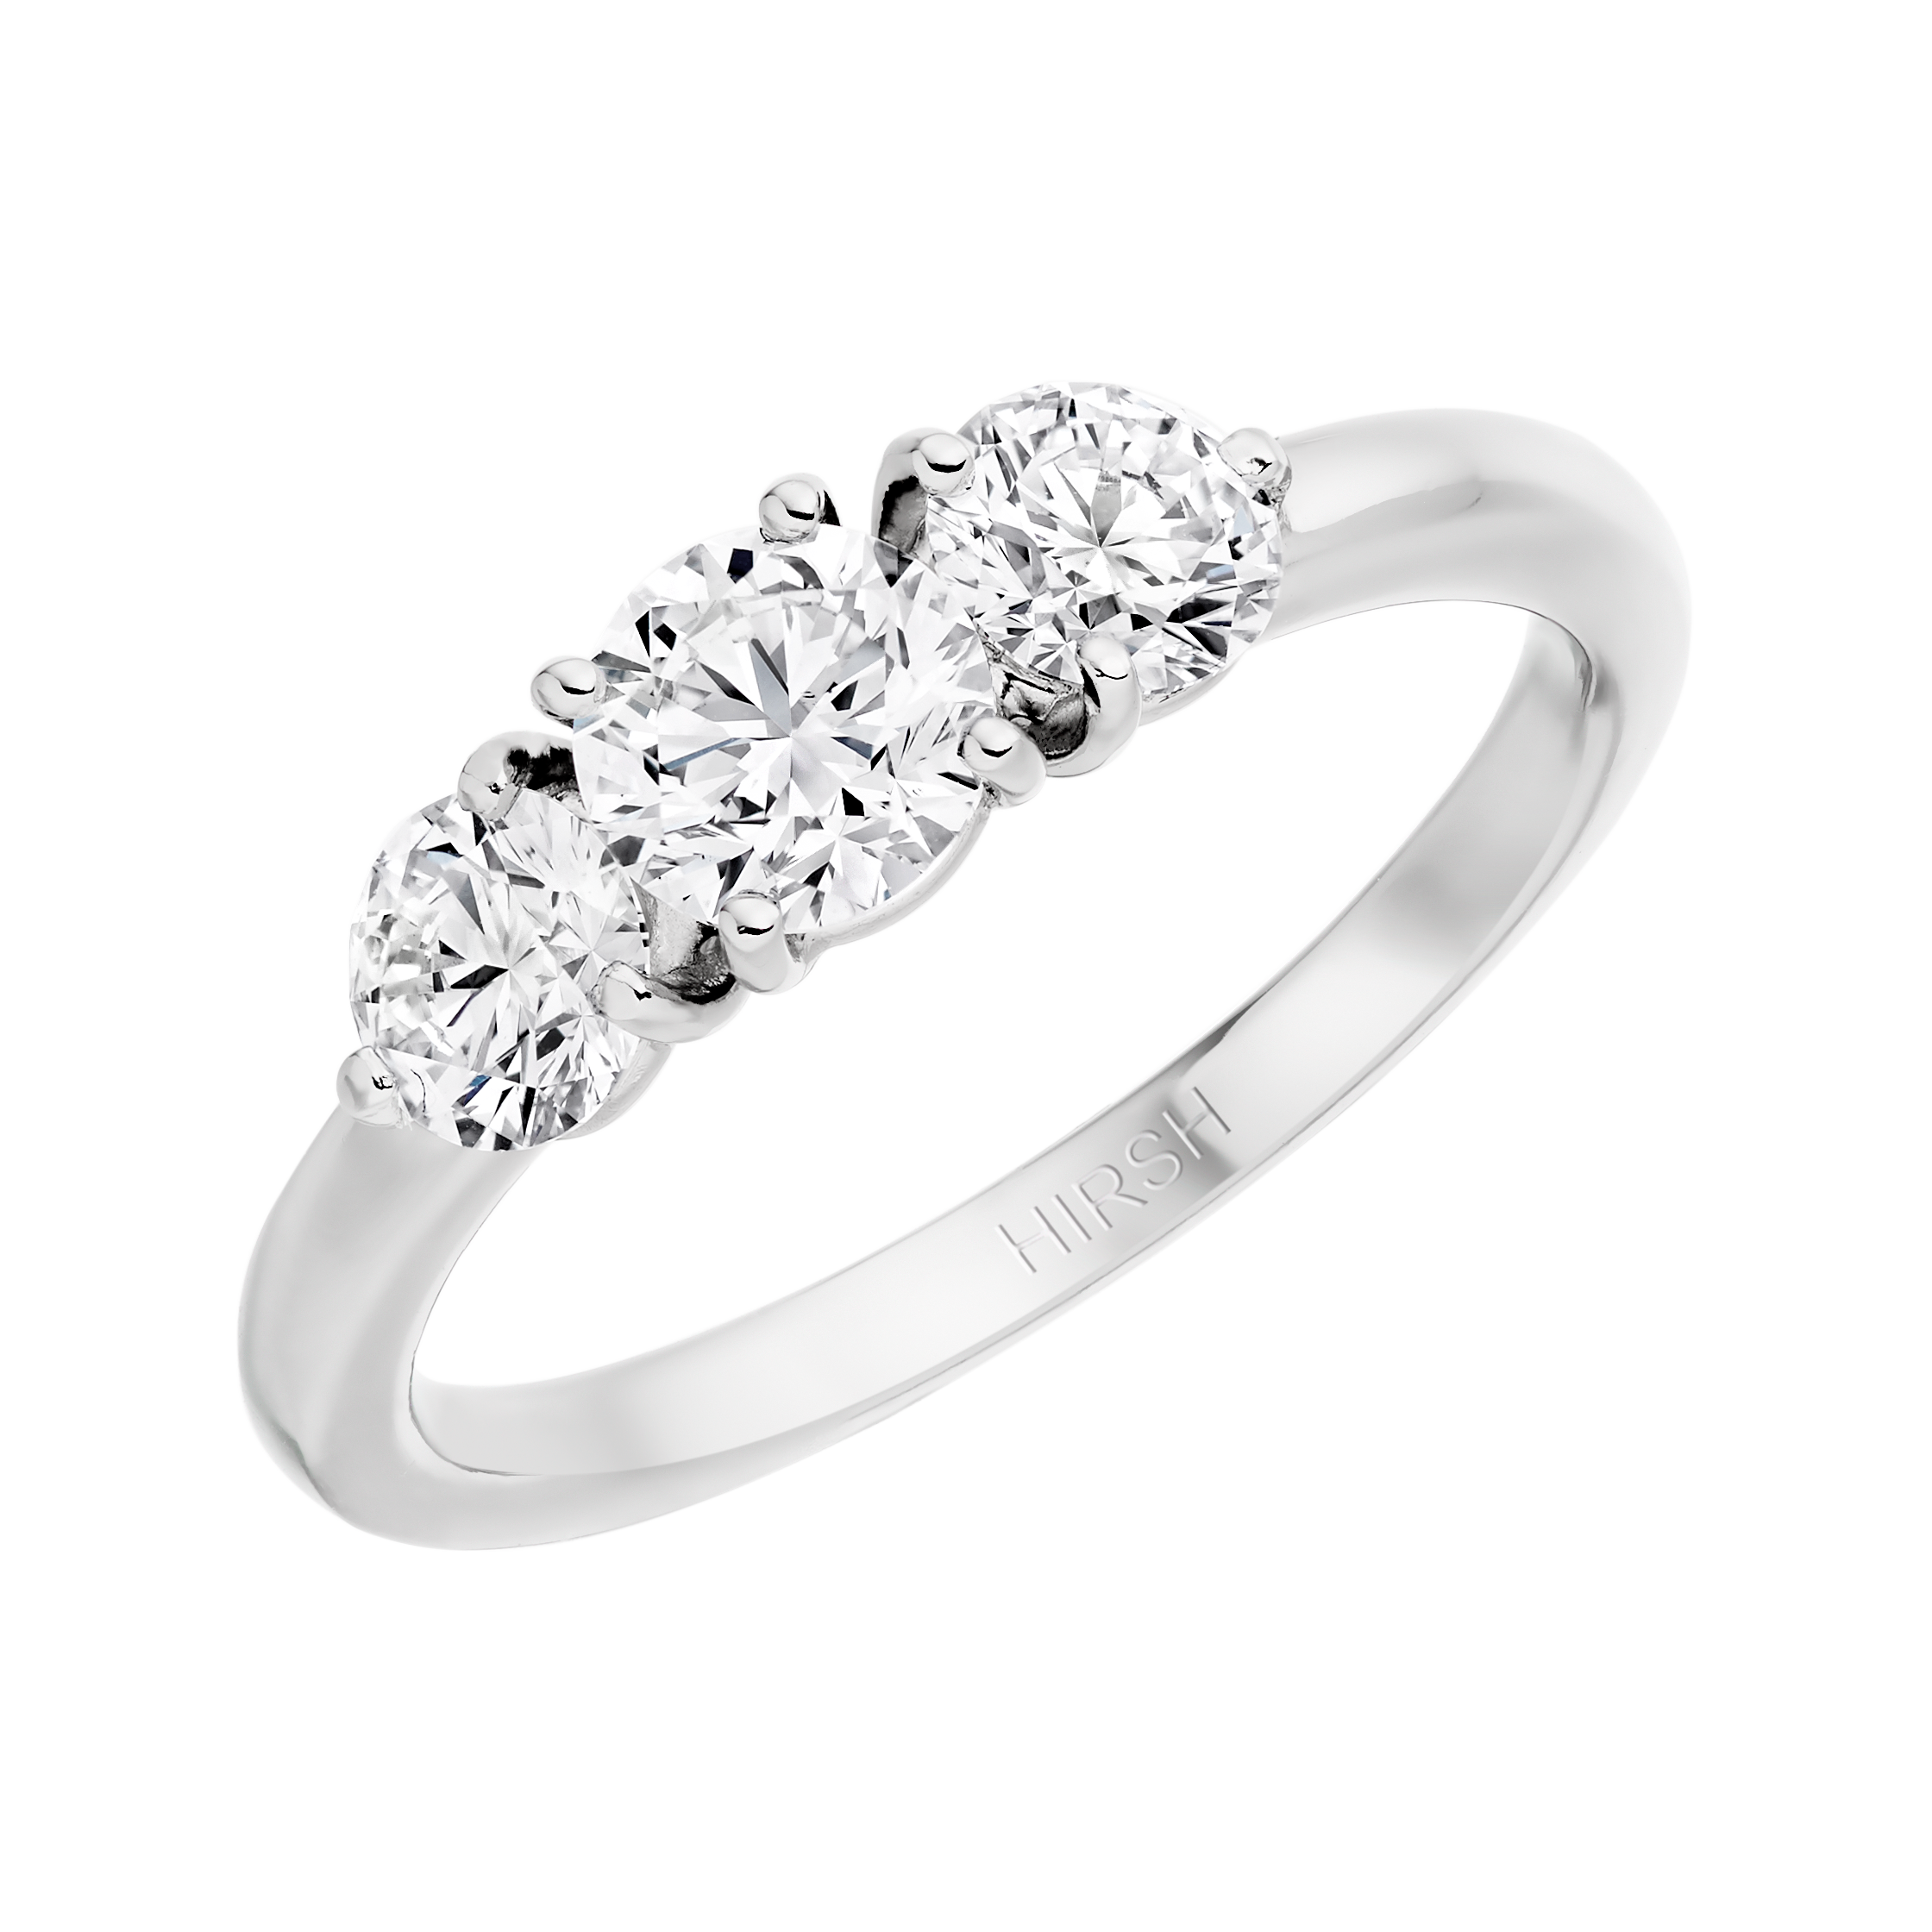 ring bridal jewellery collection rings cut shank engagement diamond pav brilliant round asprey with